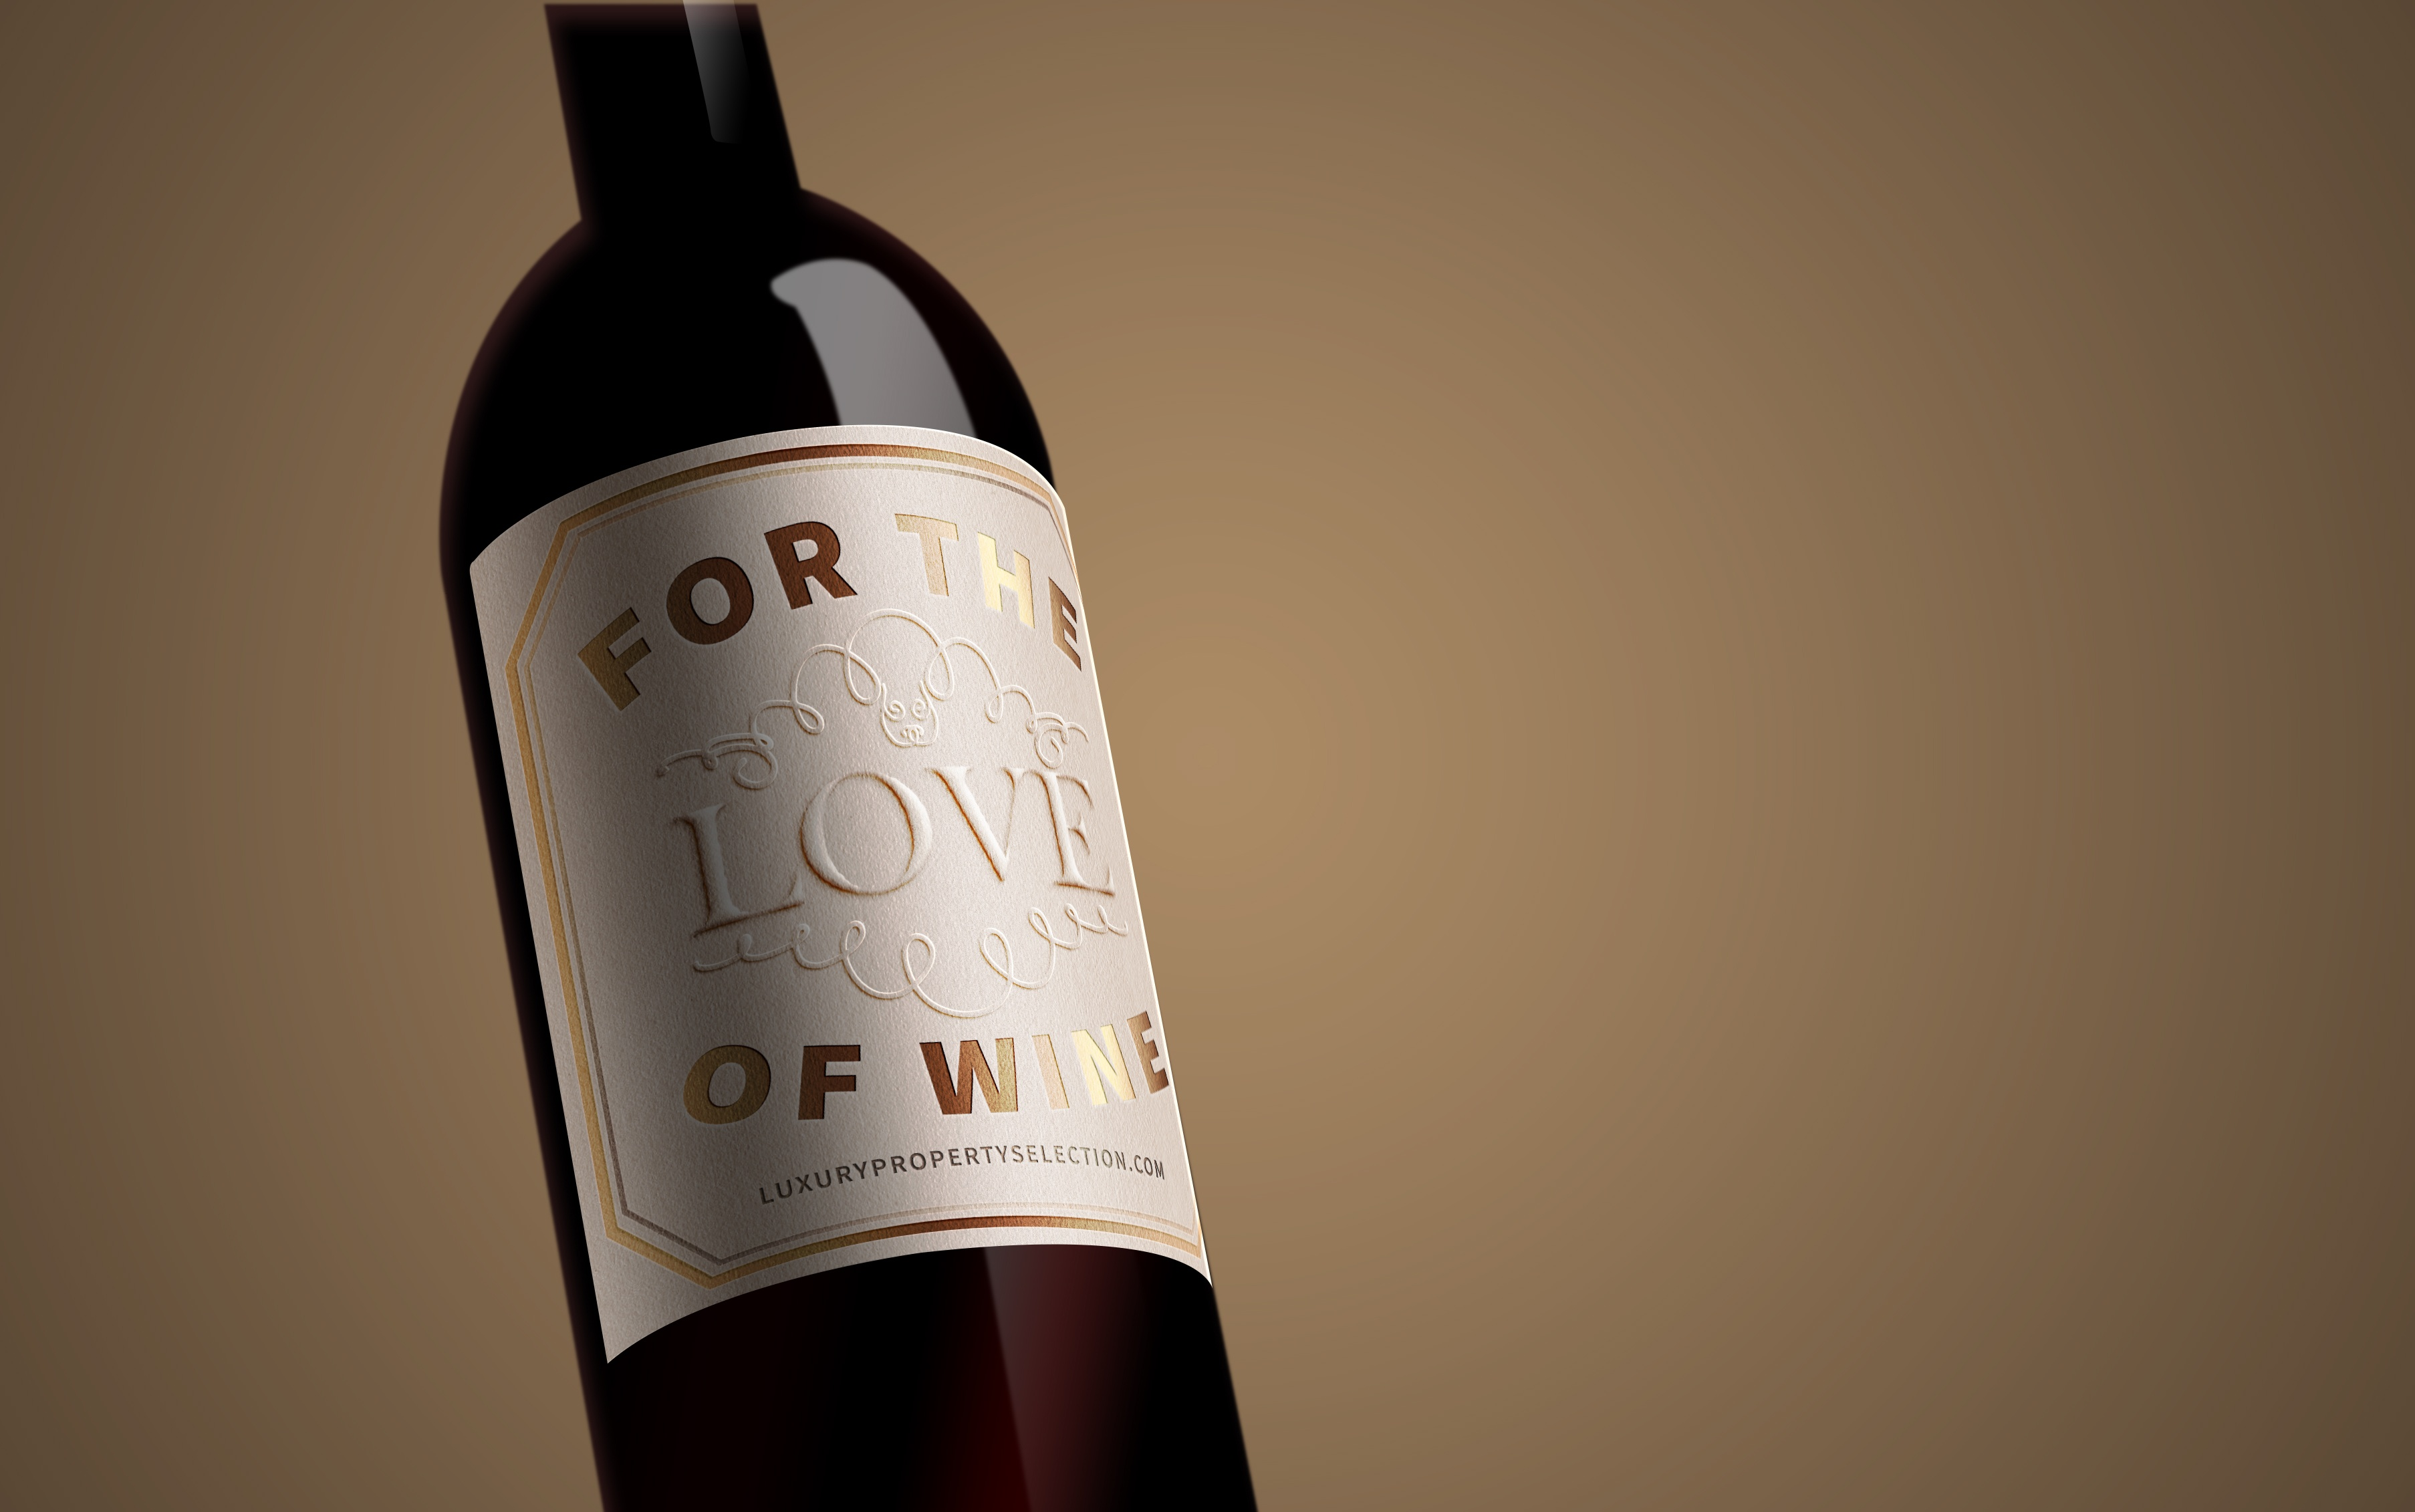 For the love of wine 1